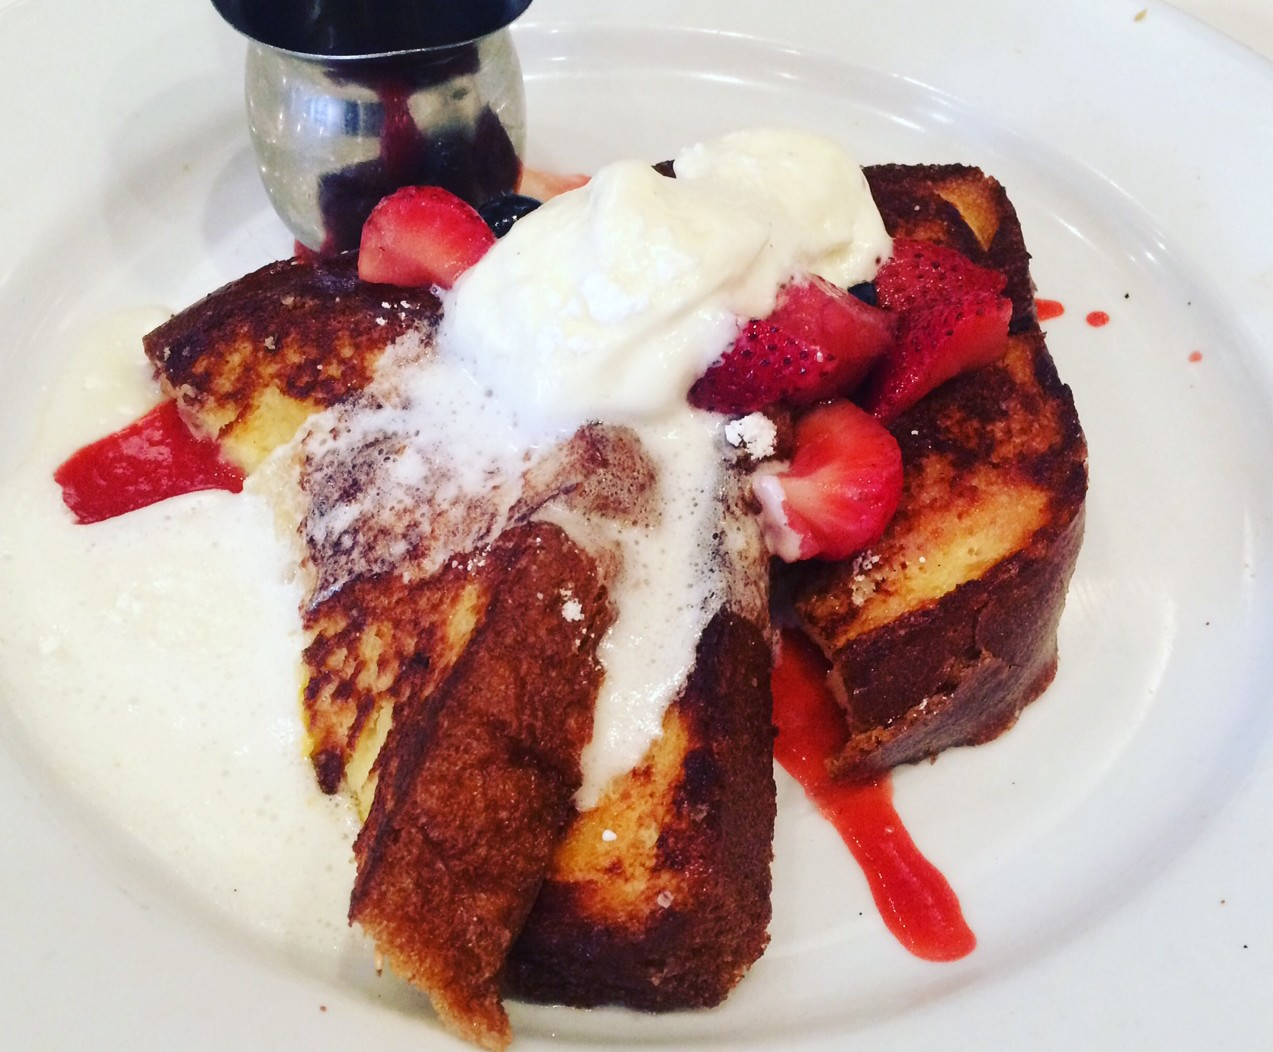 benjys-houston-french-toast-brunch